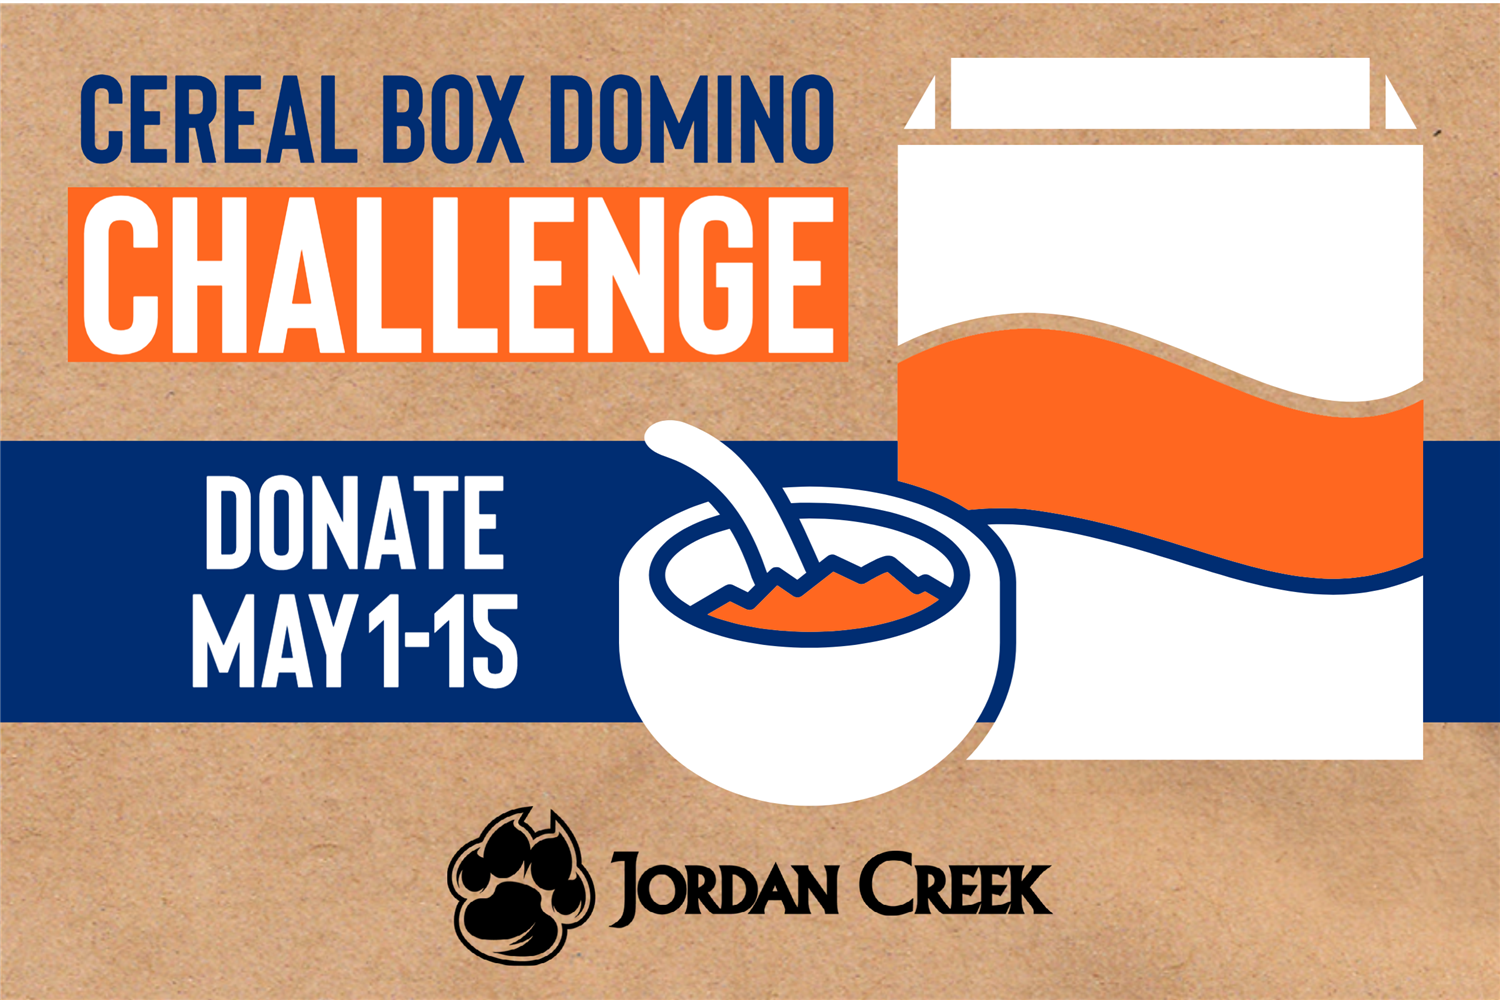 Jordan Creek Elementary Cereal Box Domino Challenge graphic.